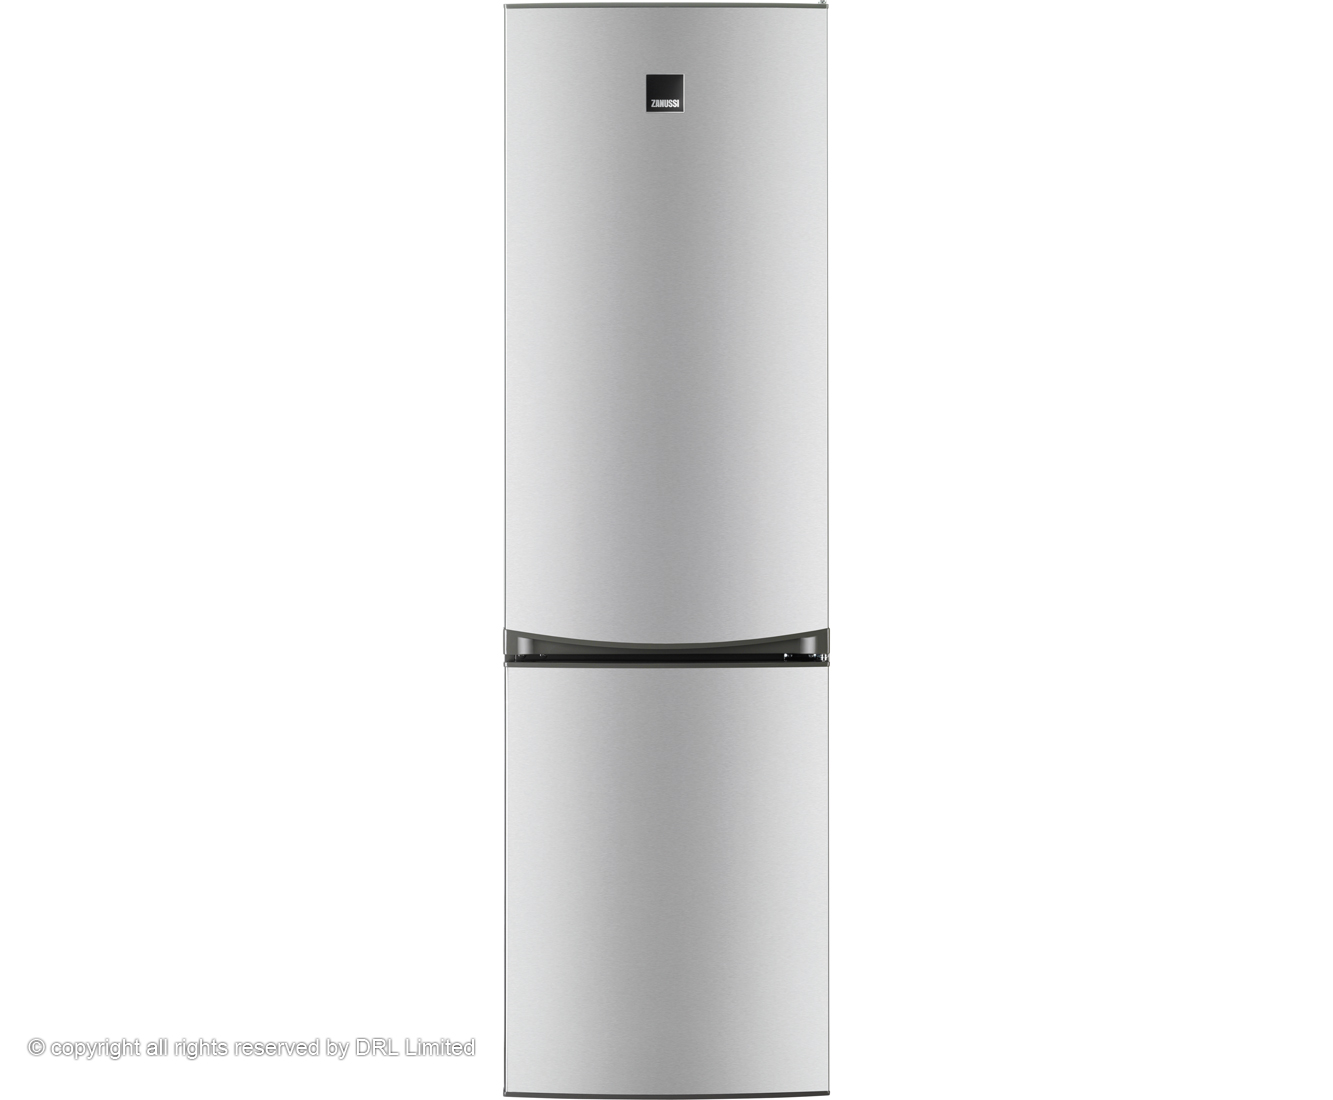 Zanussi ZRB32212XA Frost Free Fridge Freezer - Stainless Steel